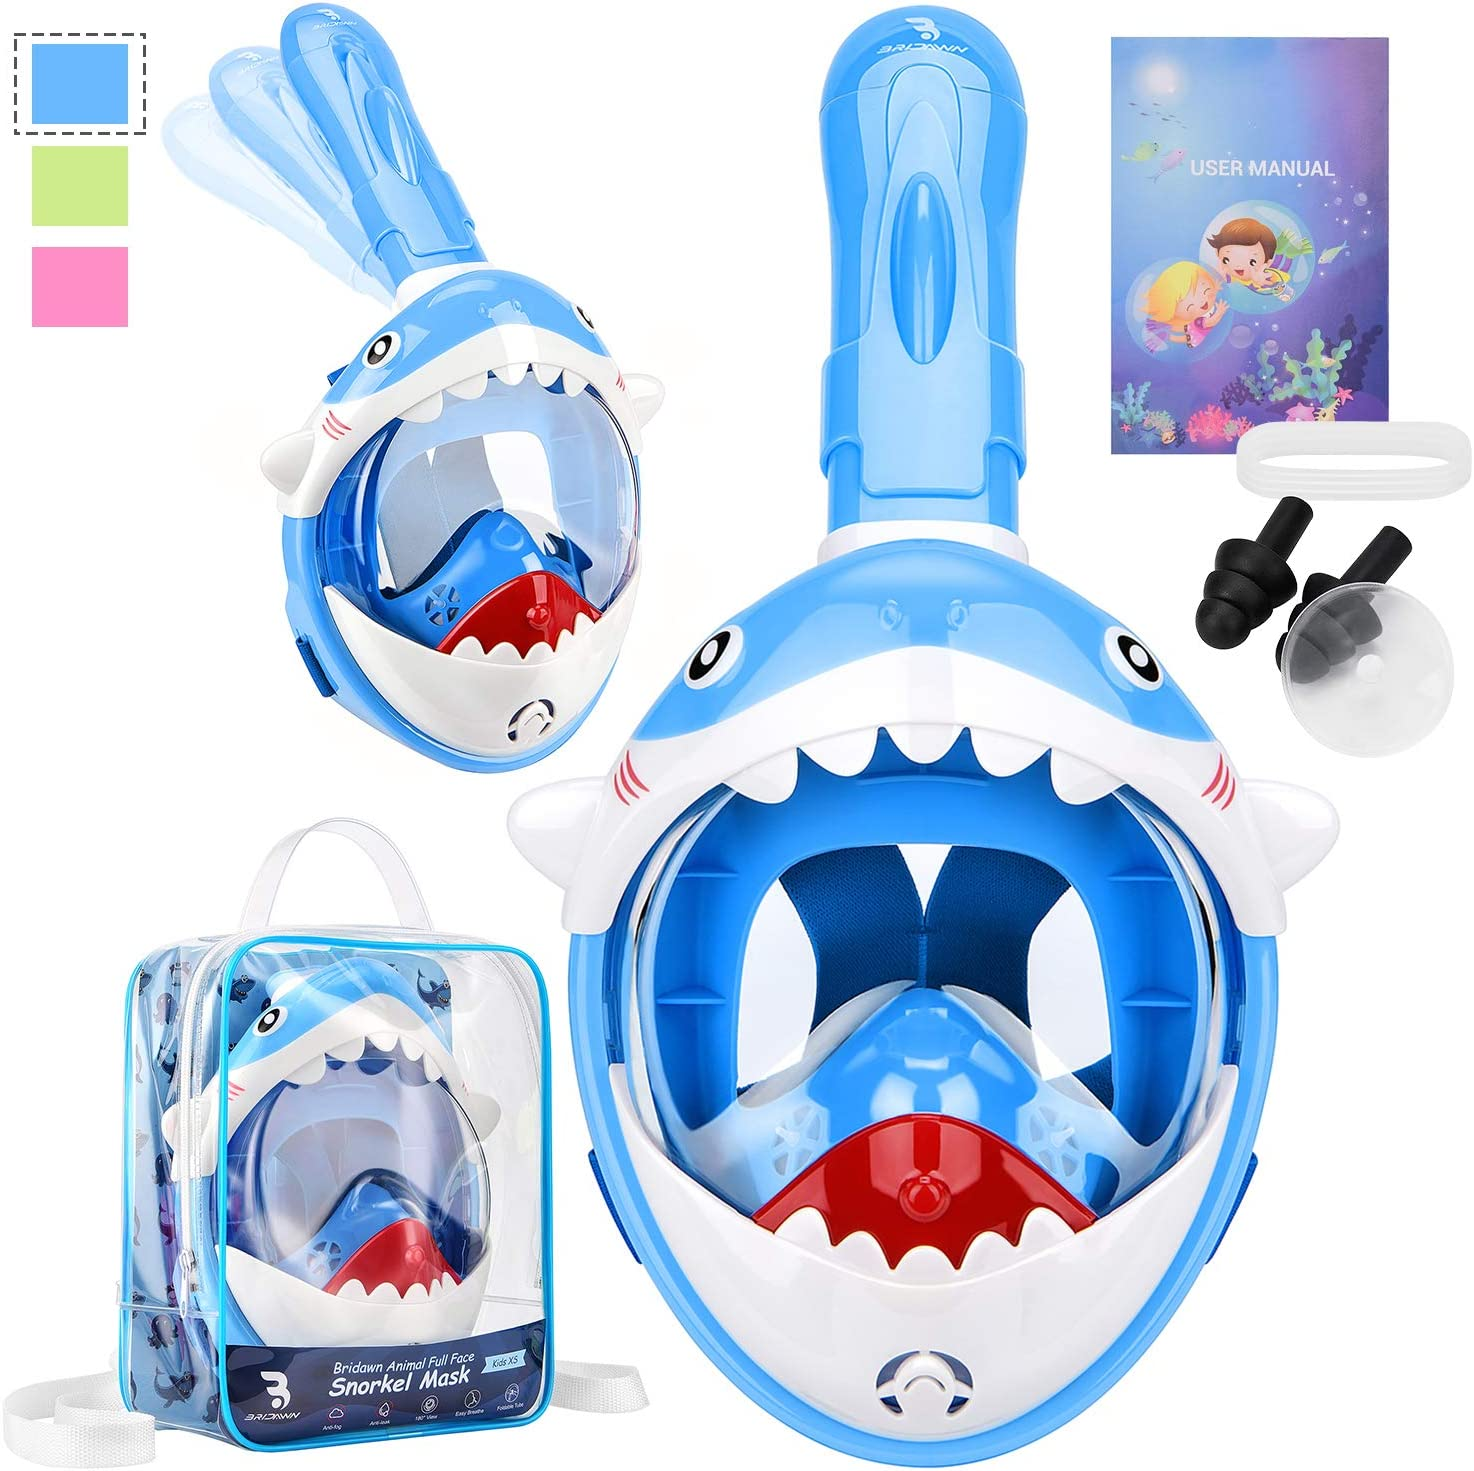 bridawn Snorkel Mask Full Face Kids Cute Design with Portable Backpack Underwater Scuba Swimming Masks Easy Breathe Anti-Fog Anti-Leak Foldable Dry Top Breathing Tube 180 Panoramic View Snorkeling Set